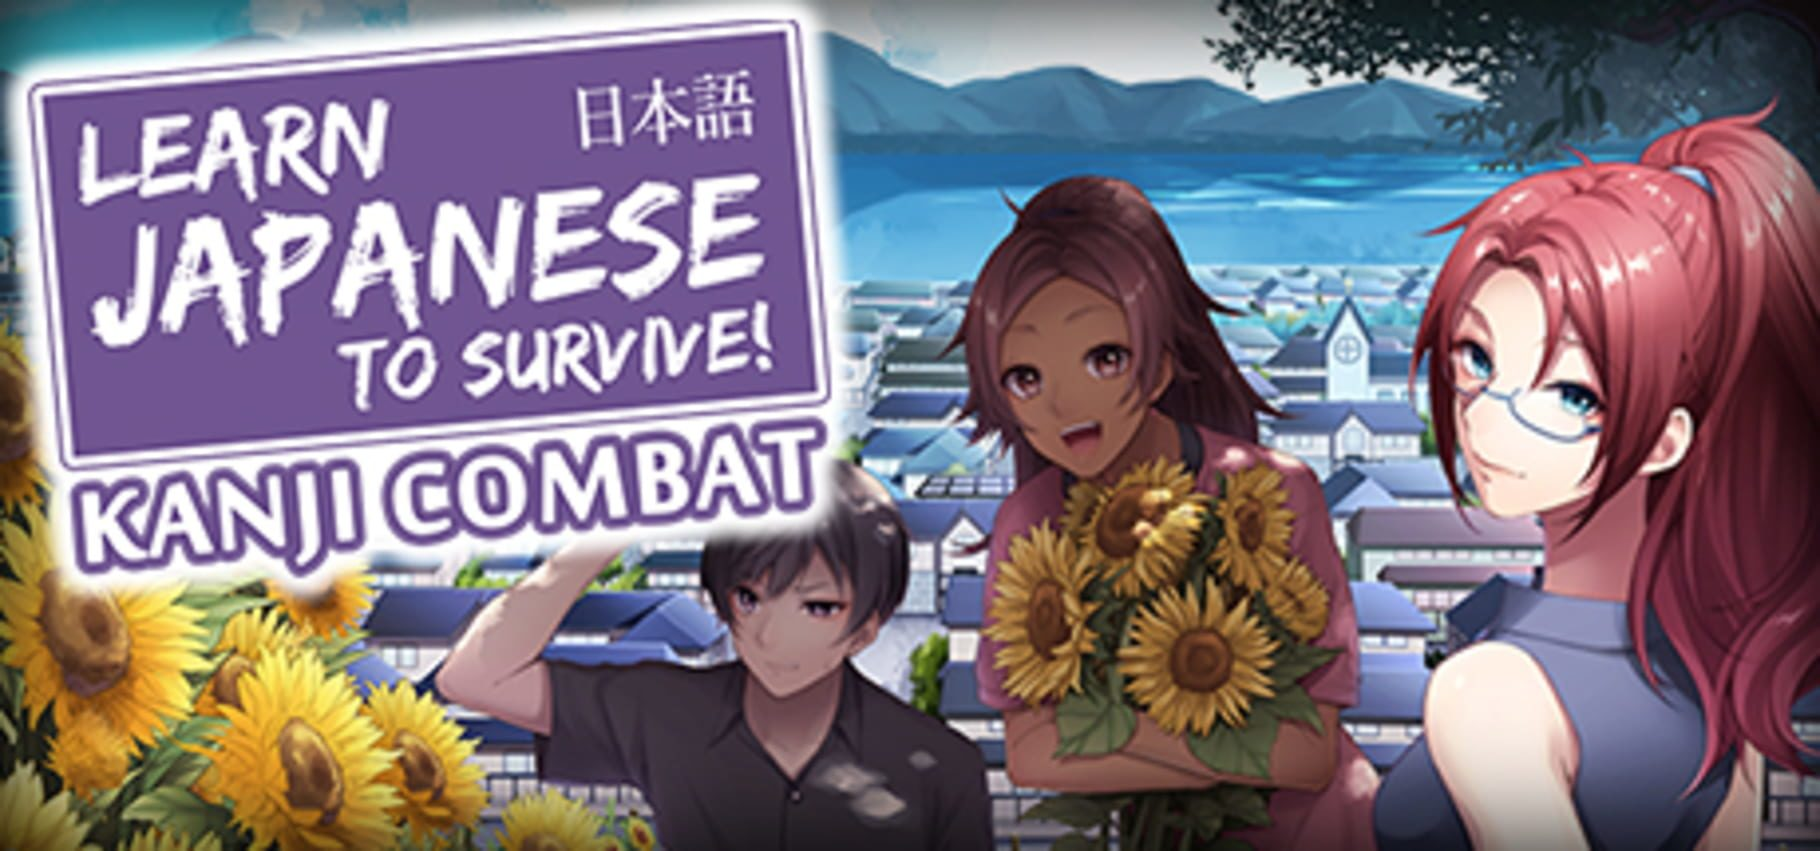 buy Learn Japanese To Survive! Kanji Combat cd key for all platform